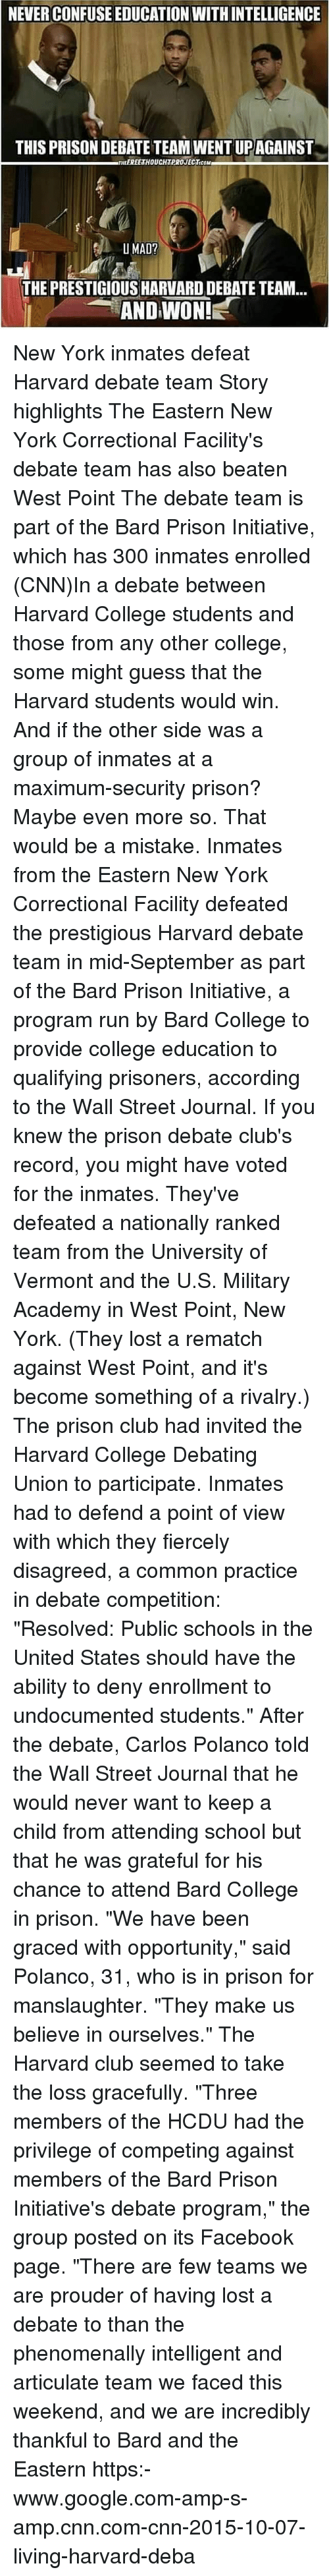 """Club, cnn.com, and College: NEVER CONFUSE EDUCATION WITH INTELLIGENCE  THIS PRISON DEBATE TEAM WENT UPAGAINST  THEEREETHOUCHTPROJECTCOM  THE PRESTIGIOUS HARVARD DEBATE TEAM...  AND WON! New York inmates defeat Harvard debate team Story highlights The Eastern New York Correctional Facility's debate team has also beaten West Point The debate team is part of the Bard Prison Initiative, which has 300 inmates enrolled (CNN)In a debate between Harvard College students and those from any other college, some might guess that the Harvard students would win. And if the other side was a group of inmates at a maximum-security prison? Maybe even more so. That would be a mistake. Inmates from the Eastern New York Correctional Facility defeated the prestigious Harvard debate team in mid-September as part of the Bard Prison Initiative, a program run by Bard College to provide college education to qualifying prisoners, according to the Wall Street Journal. If you knew the prison debate club's record, you might have voted for the inmates. They've defeated a nationally ranked team from the University of Vermont and the U.S. Military Academy in West Point, New York. (They lost a rematch against West Point, and it's become something of a rivalry.) The prison club had invited the Harvard College Debating Union to participate. Inmates had to defend a point of view with which they fiercely disagreed, a common practice in debate competition: """"Resolved: Public schools in the United States should have the ability to deny enrollment to undocumented students."""" After the debate, Carlos Polanco told the Wall Street Journal that he would never want to keep a child from attending school but that he was grateful for his chance to attend Bard College in prison. """"We have been graced with opportunity,"""" said Polanco, 31, who is in prison for manslaughter. """"They make us believe in ourselves."""" The Harvard club seemed to take the loss gracefully. """"Three members of the HCDU had the privilege of competing ag"""